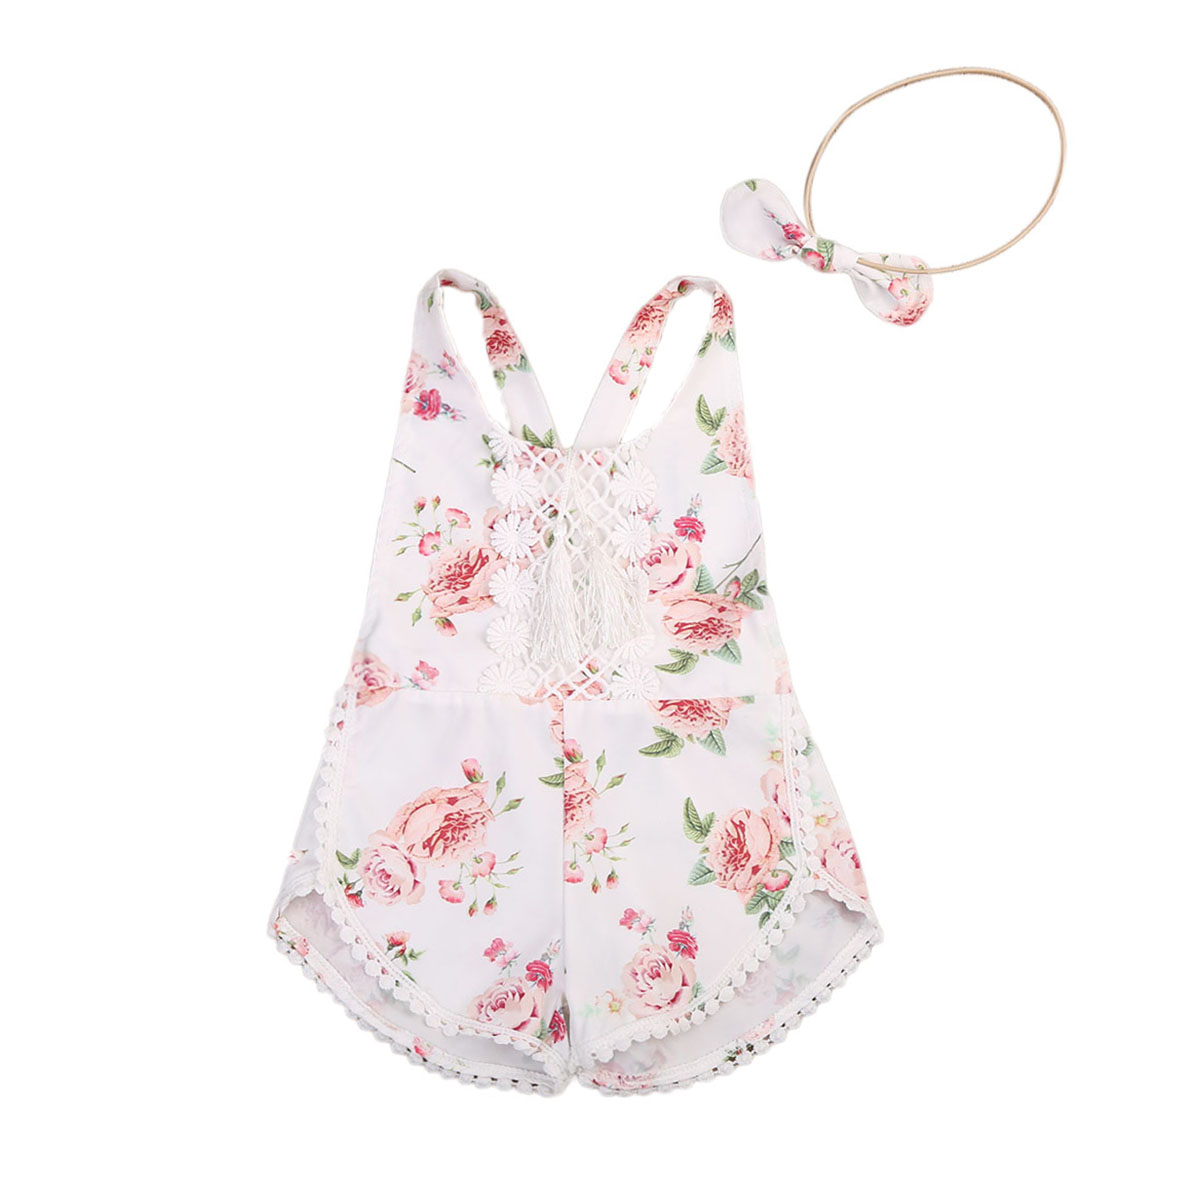 2017 Summer Newborn Baby Girl Floral Clothes Jumpsuit Sleeveless Backless Flower Belt   Romper   Headband Outfit Size 6M-4T